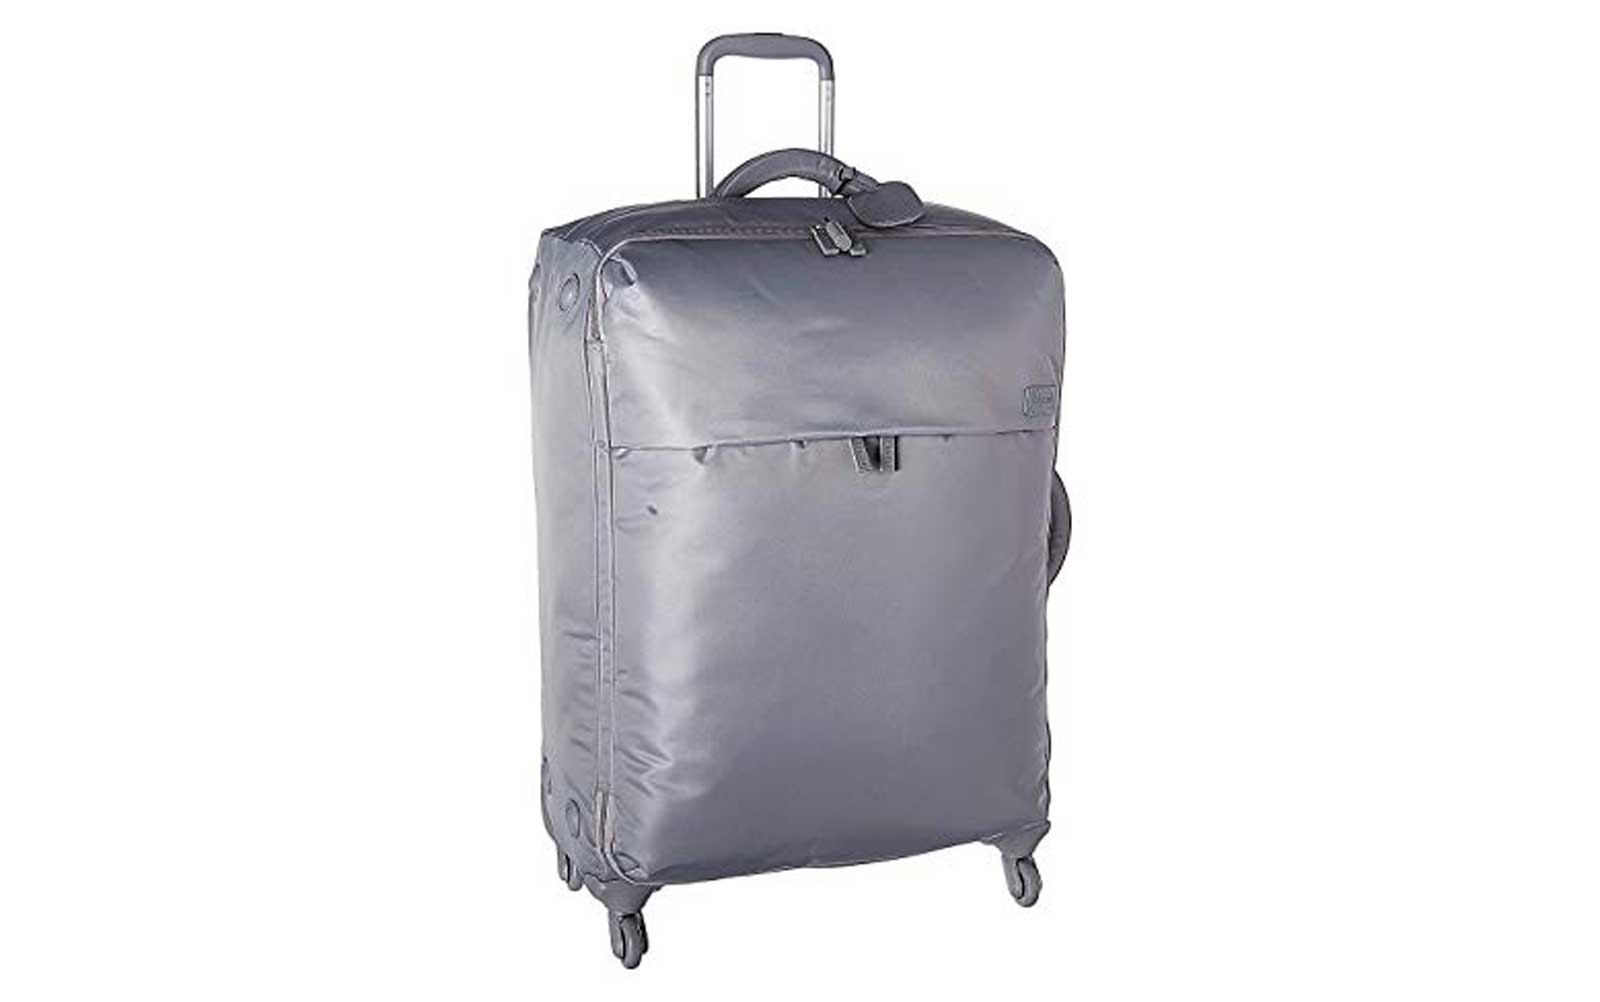 zappos cyber monday luggage deals